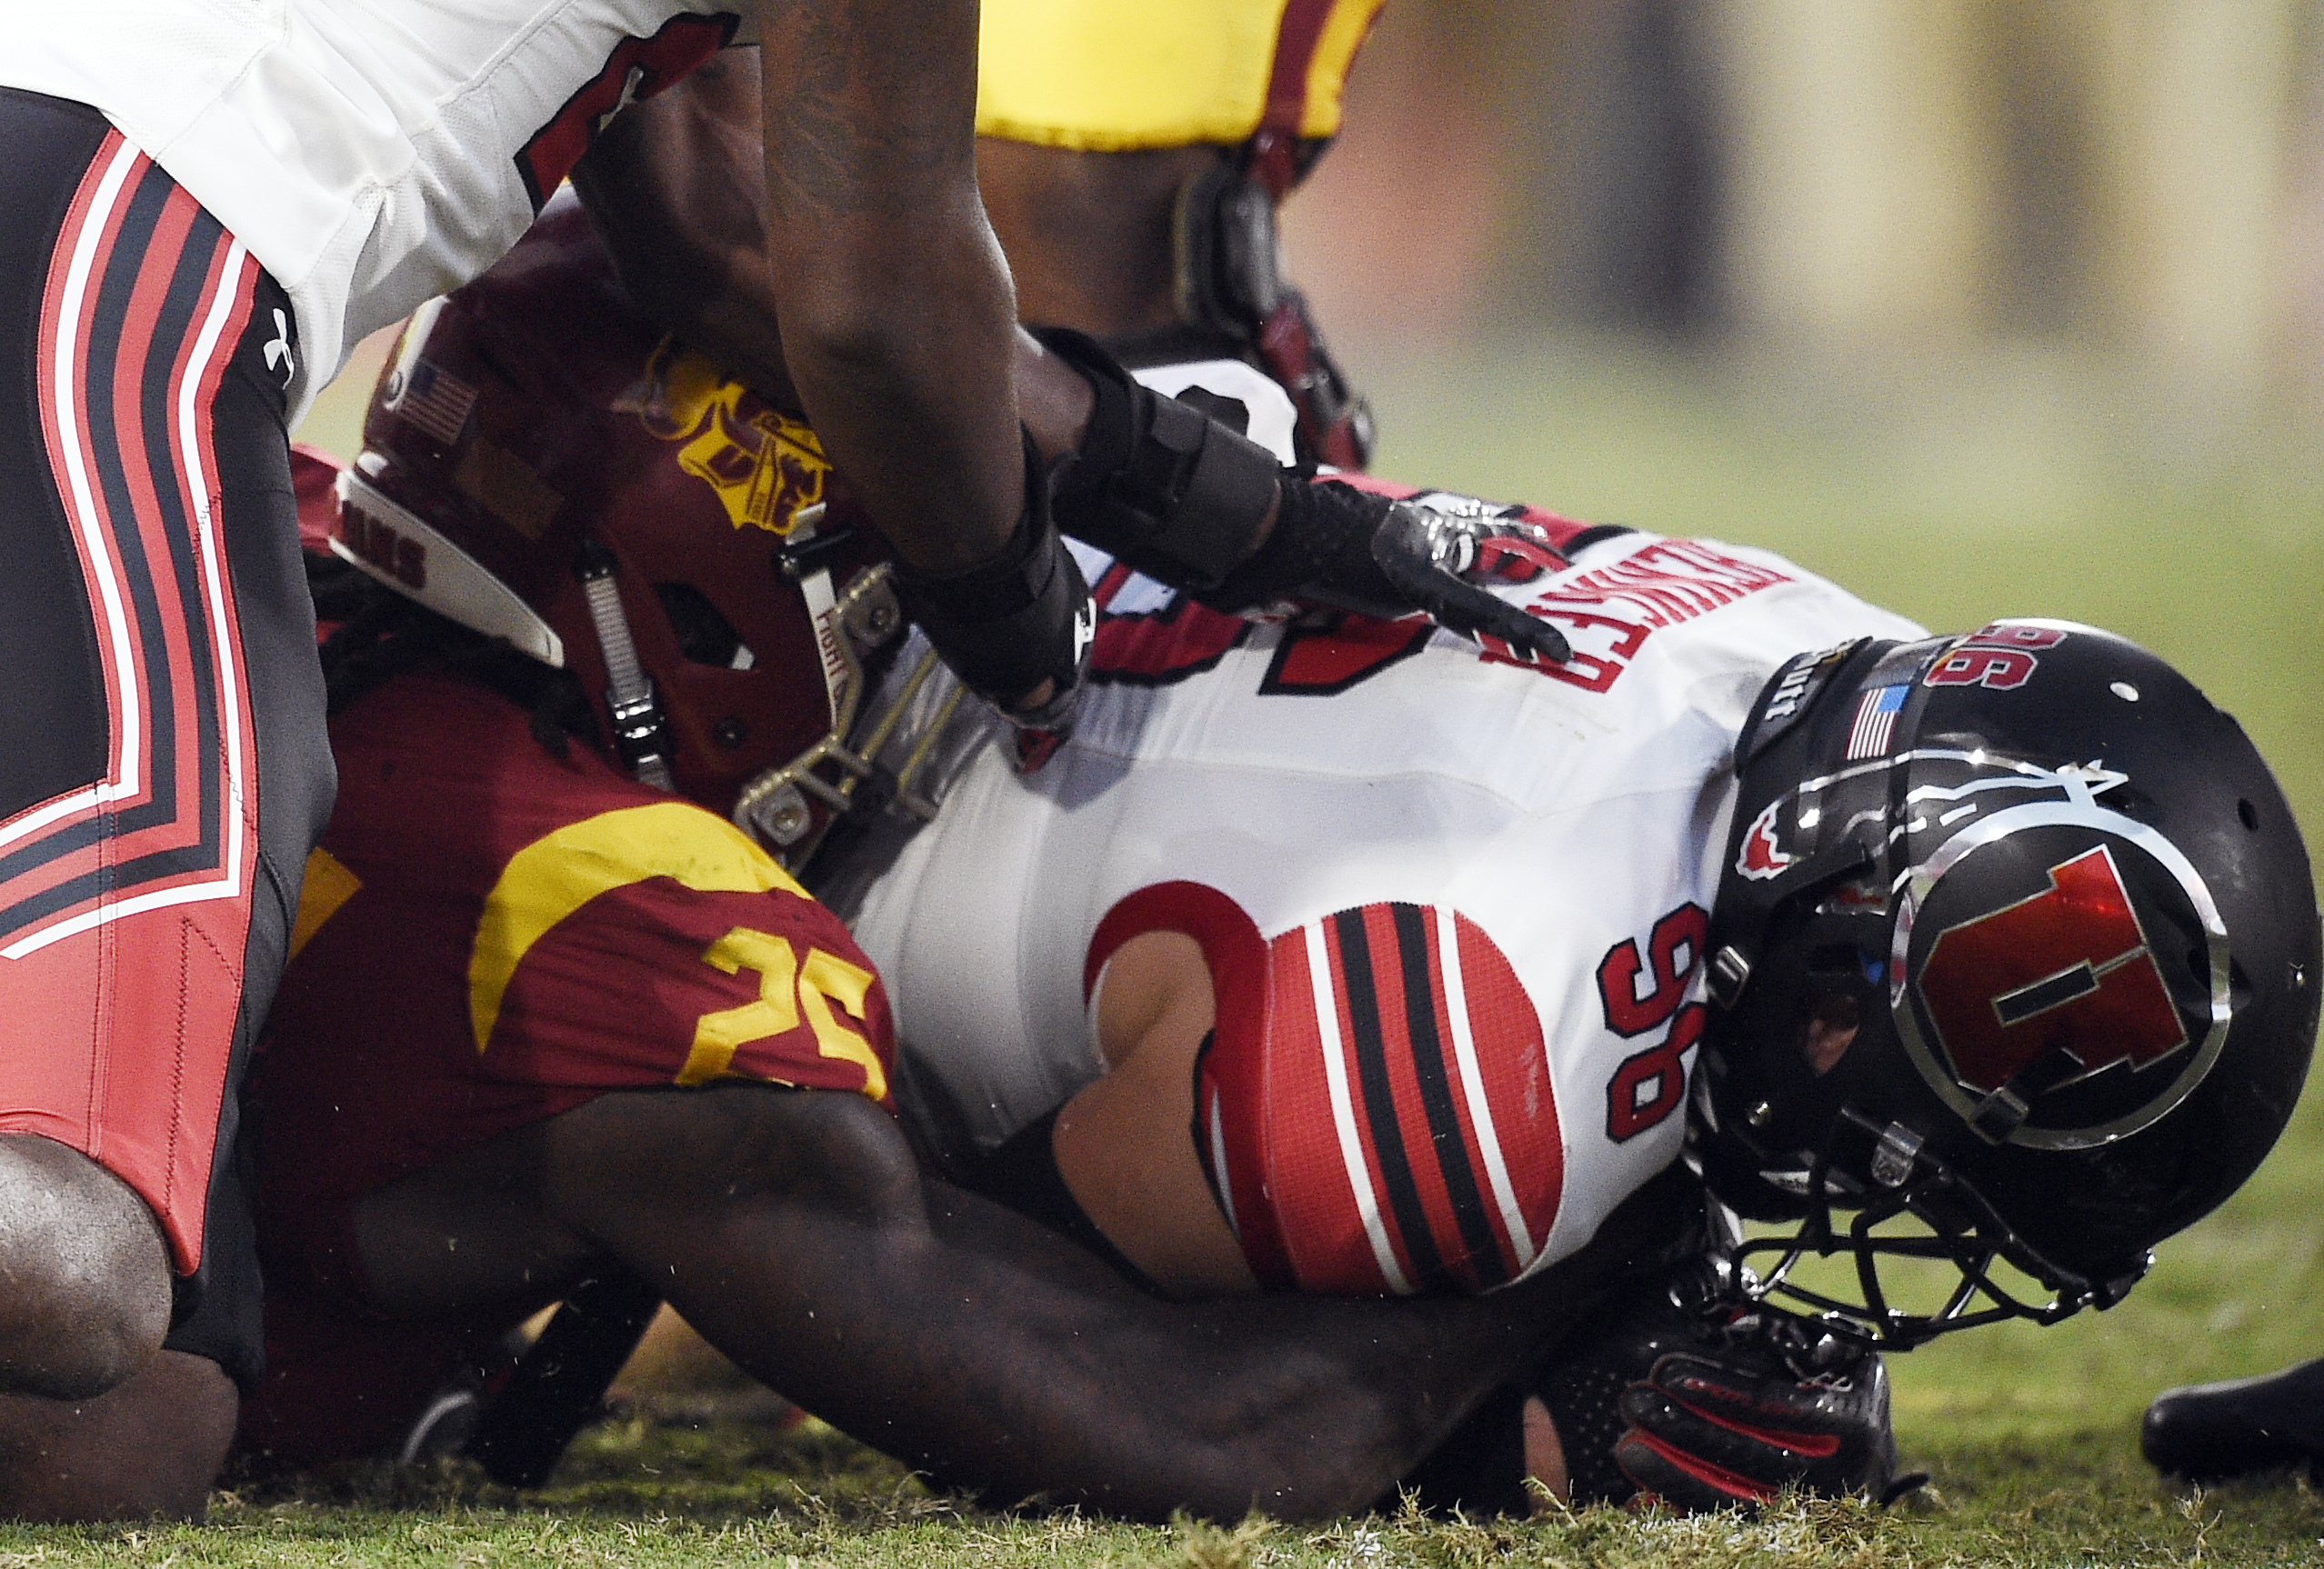 Utah defensive end Nick Heninger, right, recovers a fumble off a backward pass to Southern California running back Ronald Jones II during the first half of an NCAA college football game in Los Angeles, Saturday, Oct. 14, 2017.